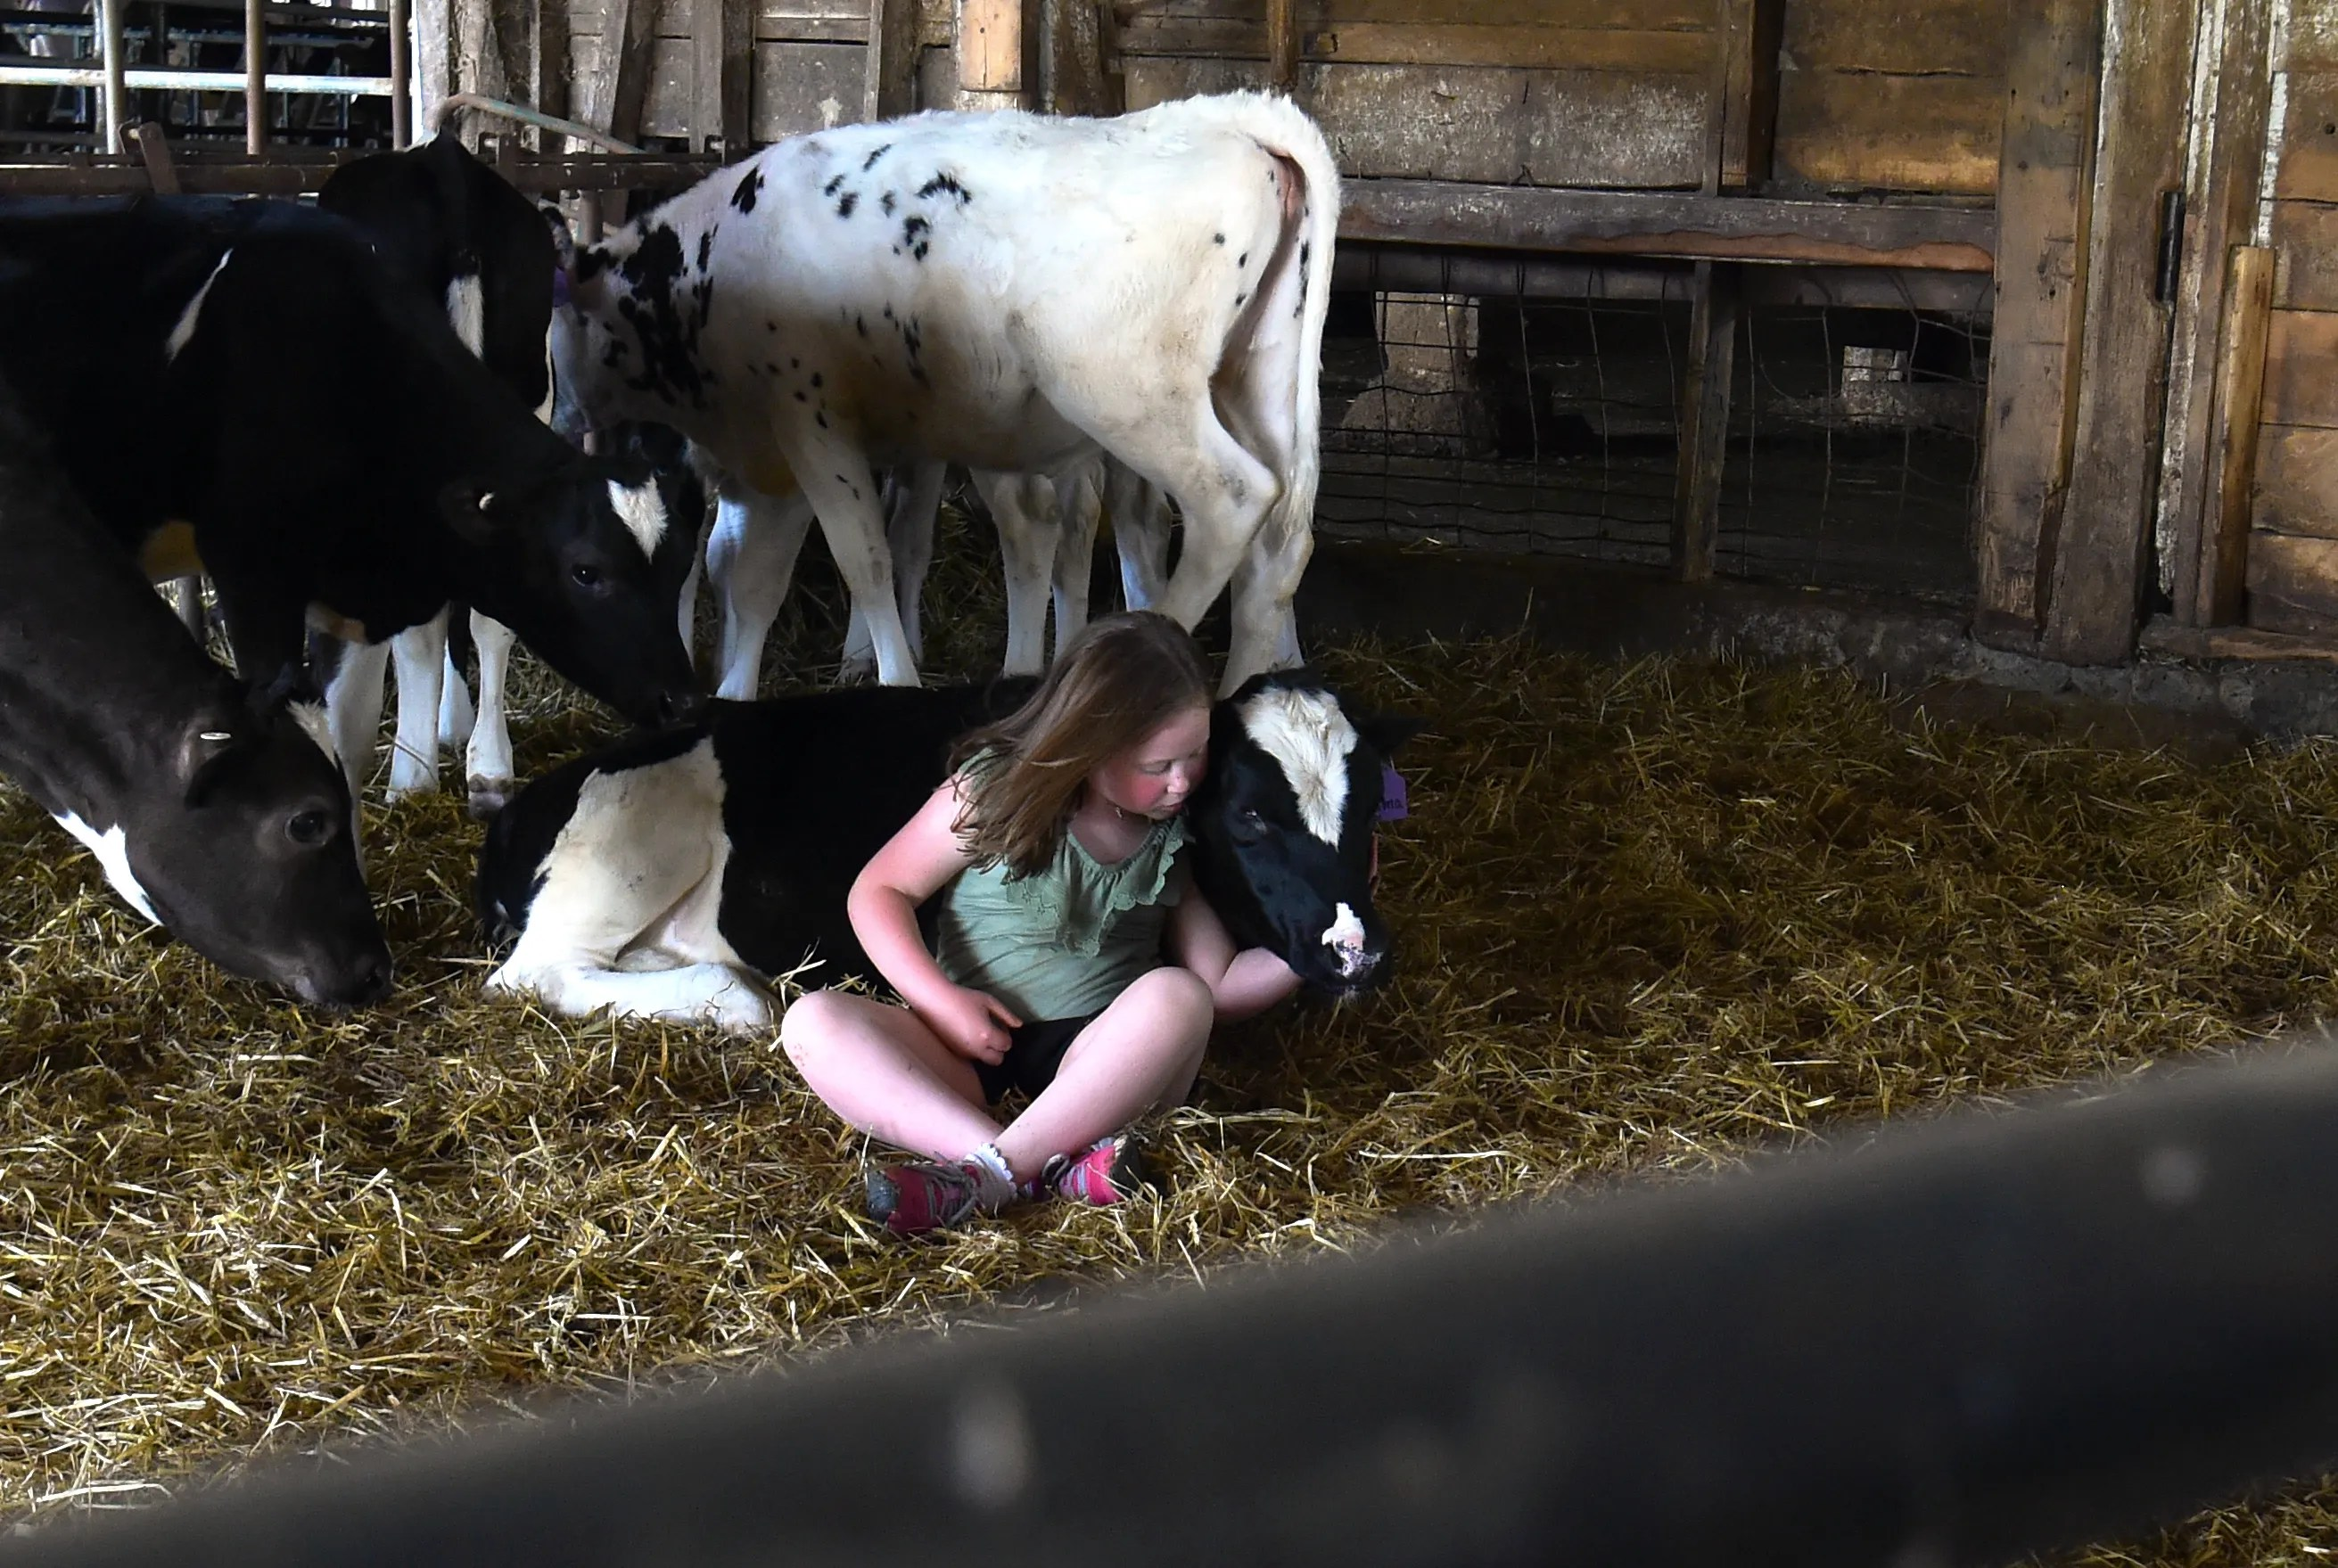 Six-year-old AnnaMay Stauffer cuddles a cow at Sunset View Creamery, in Odessa, N.Y. on May 20, 2021. According to her mom, AnnaMay -- who has sensory processing disorders -- has benefited from frequent visits to the farm and has bonded with the animals.